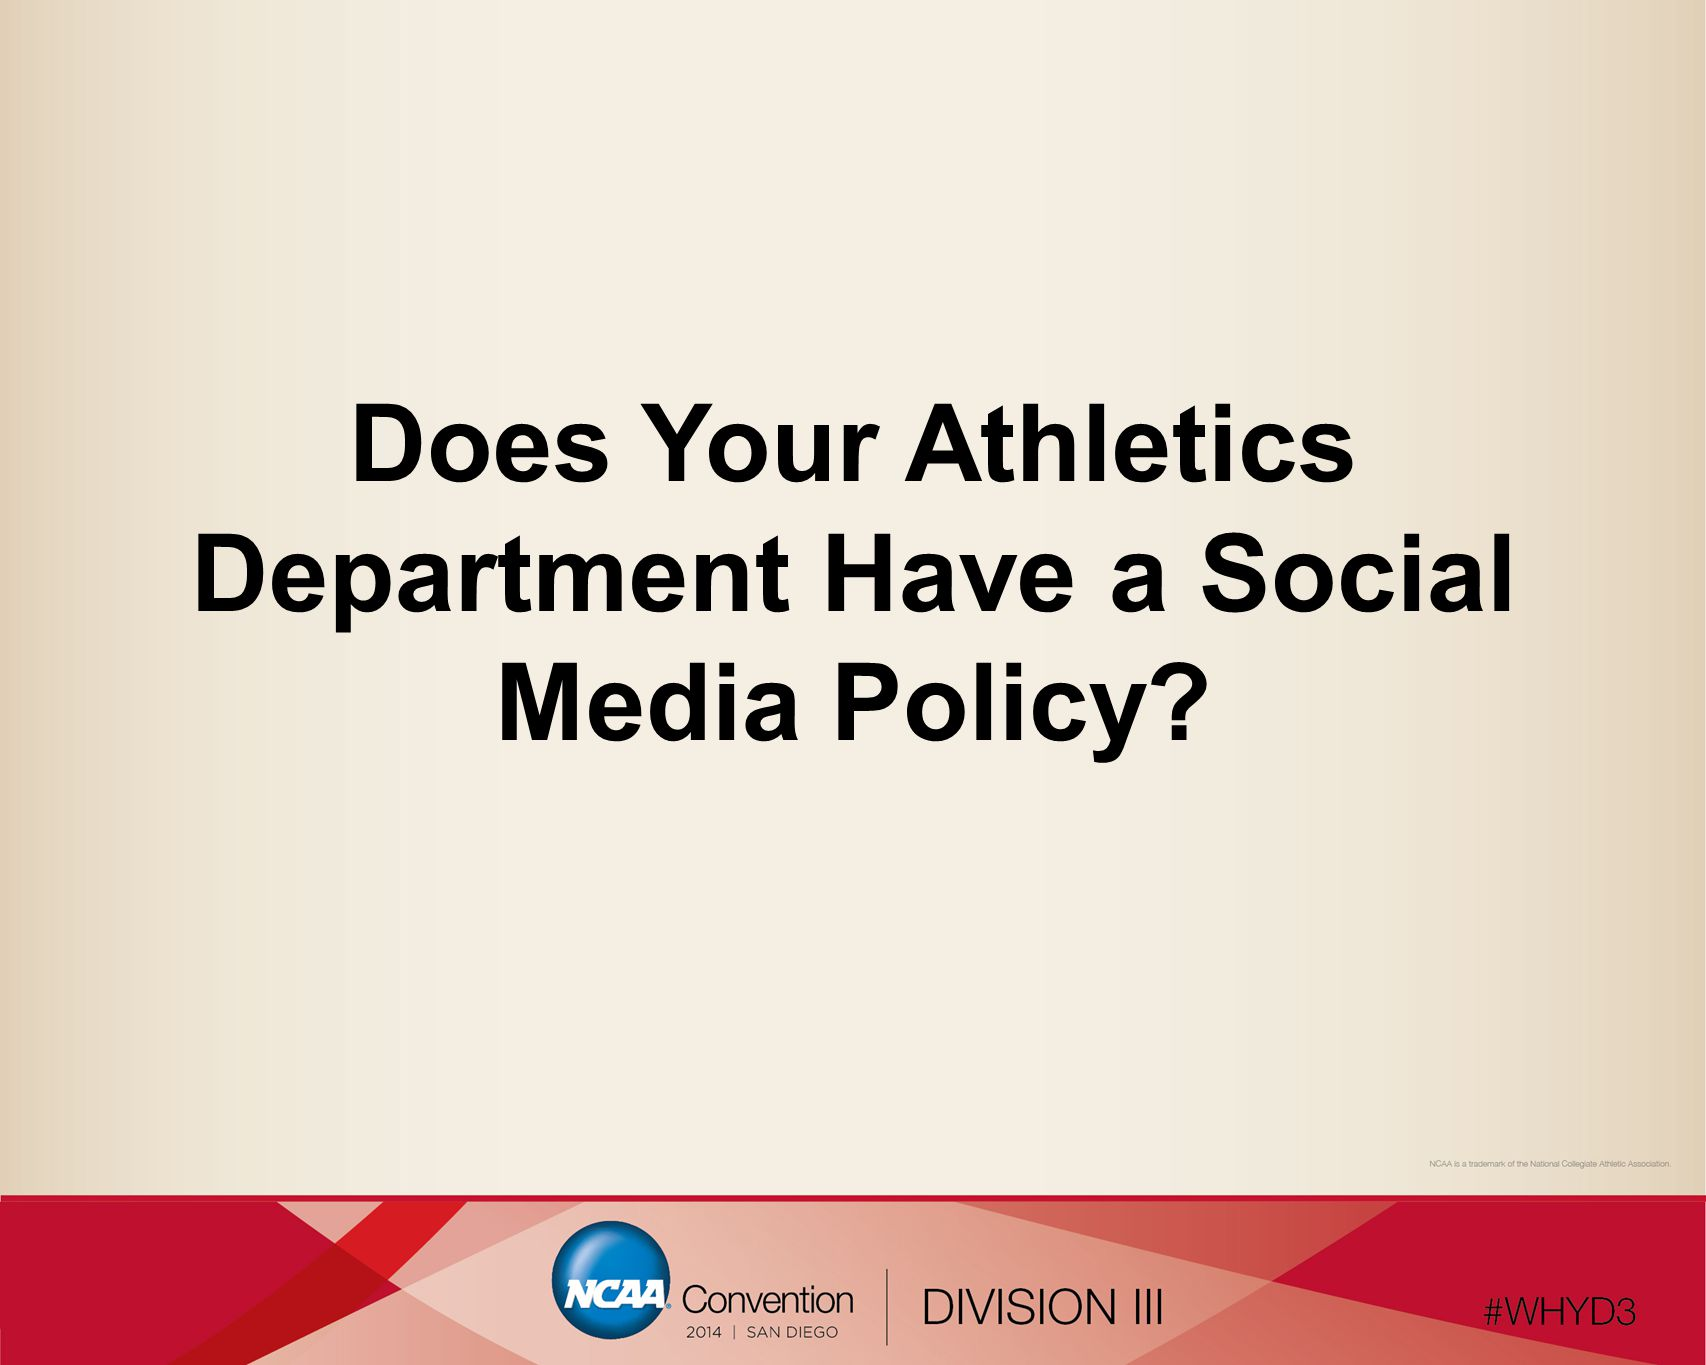 Does Your Athletics Department Have a Social Media Policy?